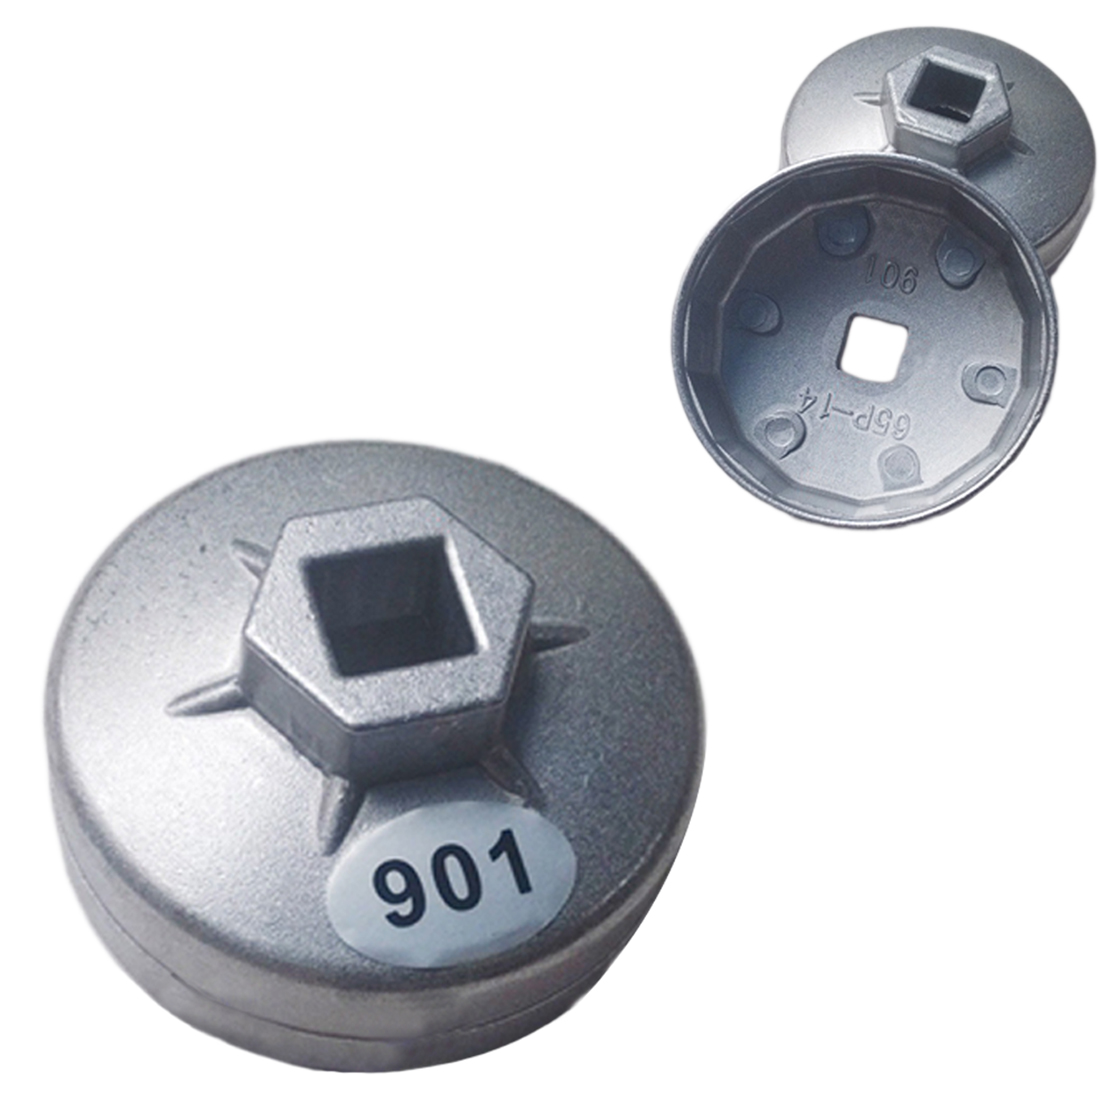 901 Cap Oil Filter Wrench 1/2